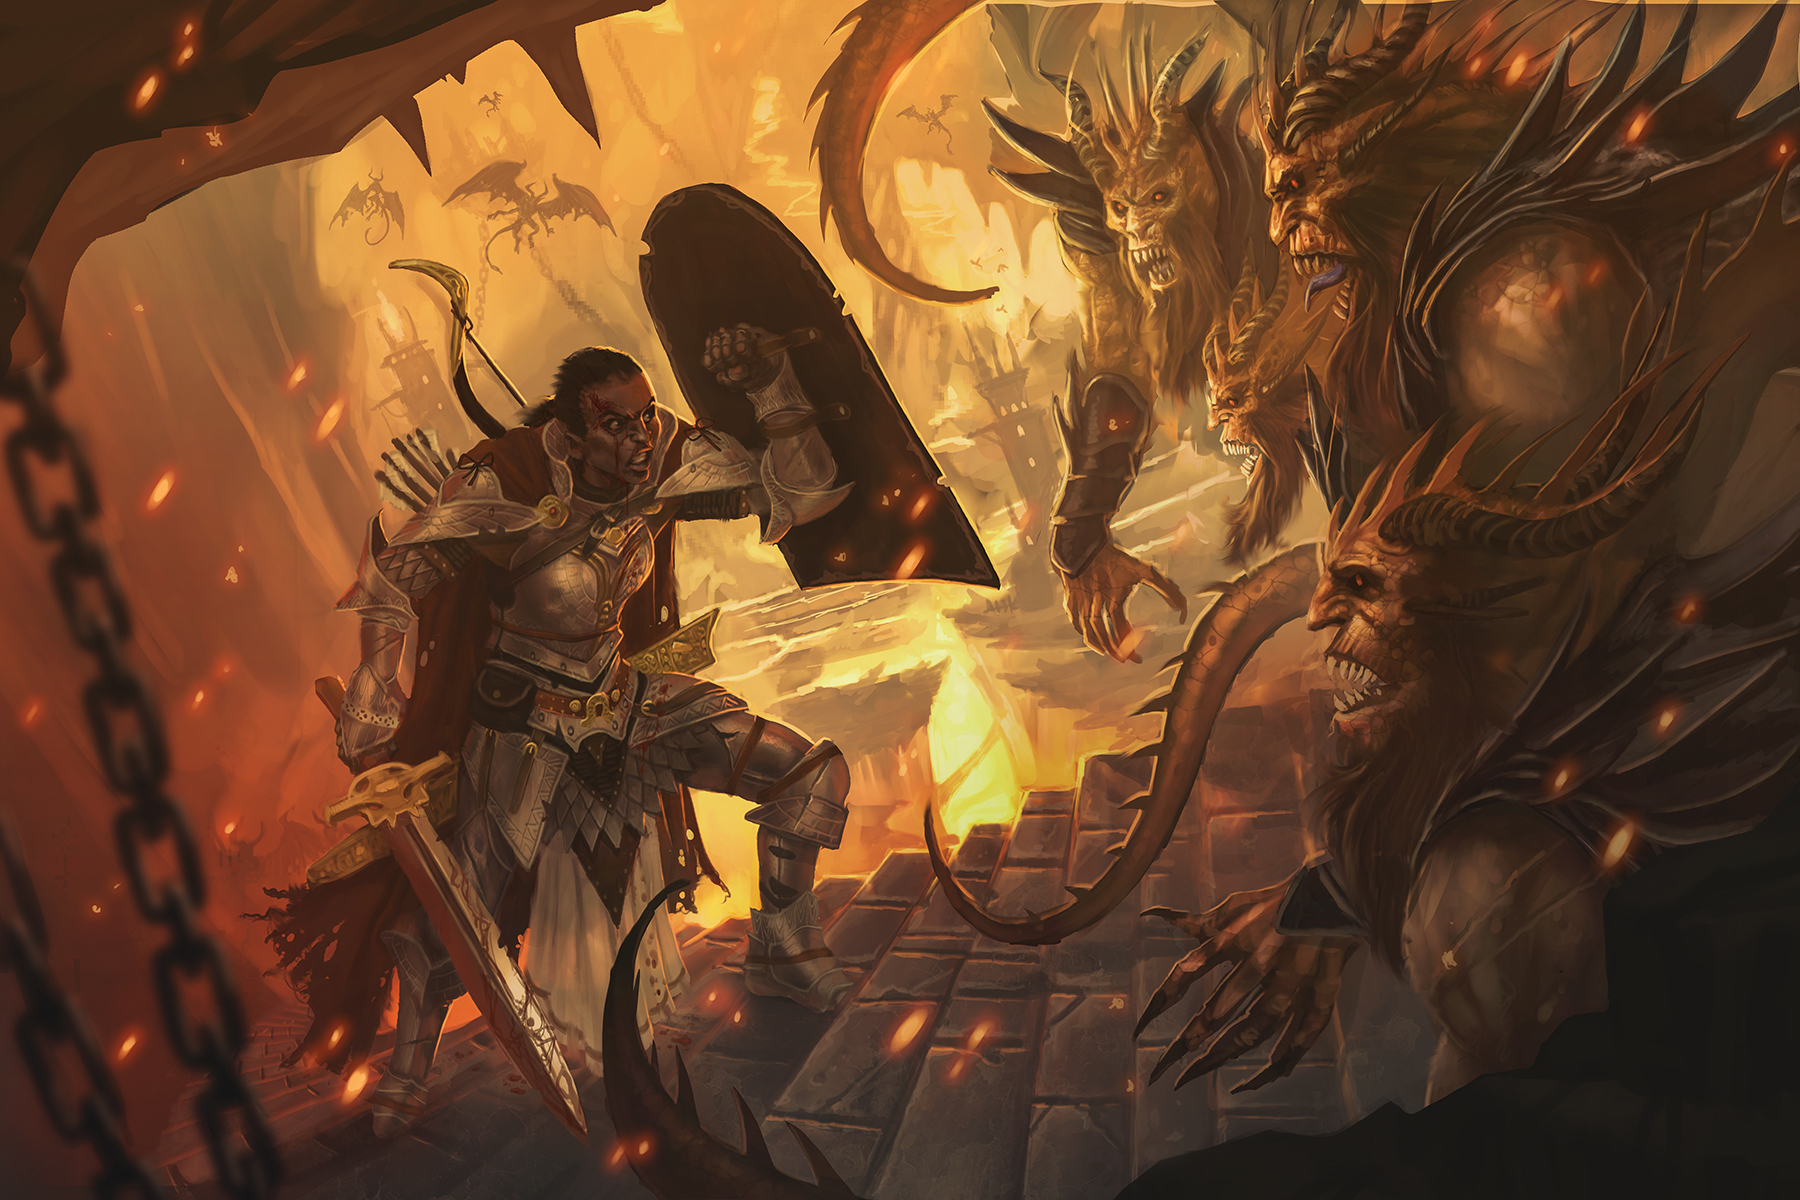 THE PALADIN CARVES THROUGH HELL 15 par traaw